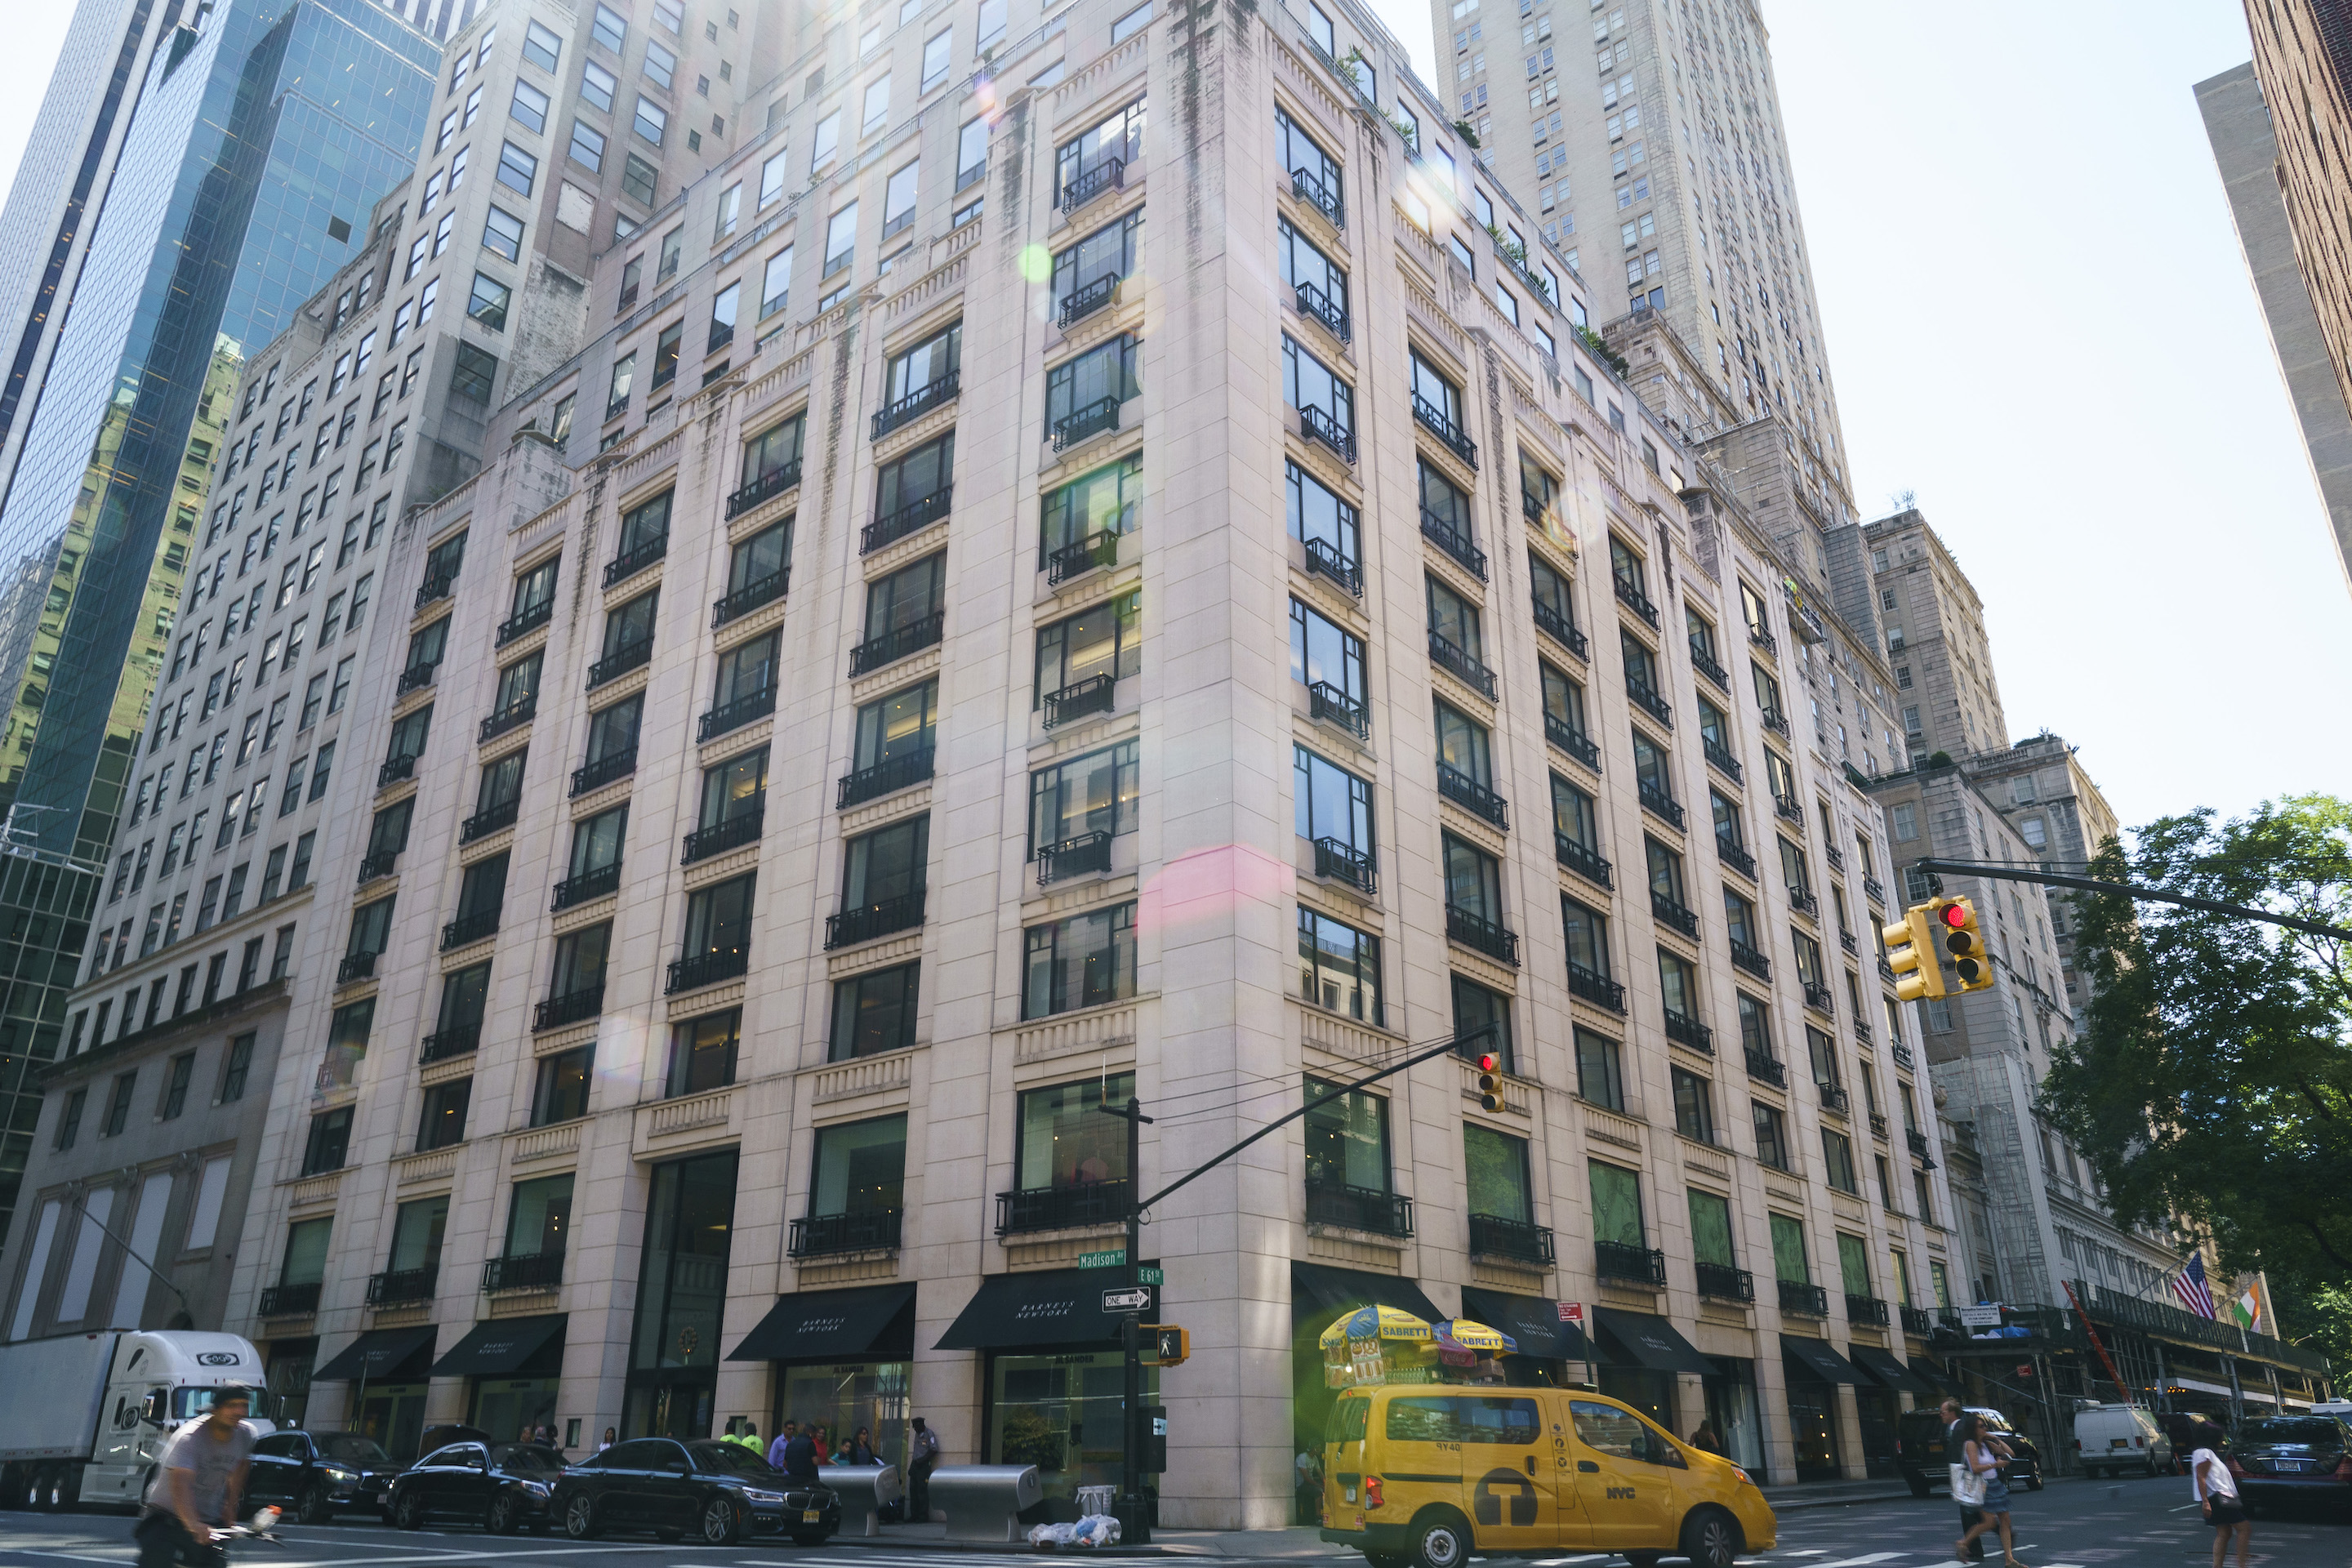 Barneys New York, at 63rd Street and Madison Avenue in Midtown Manhattan, is slated to stay open, according to plans for the retailer's reorganization.